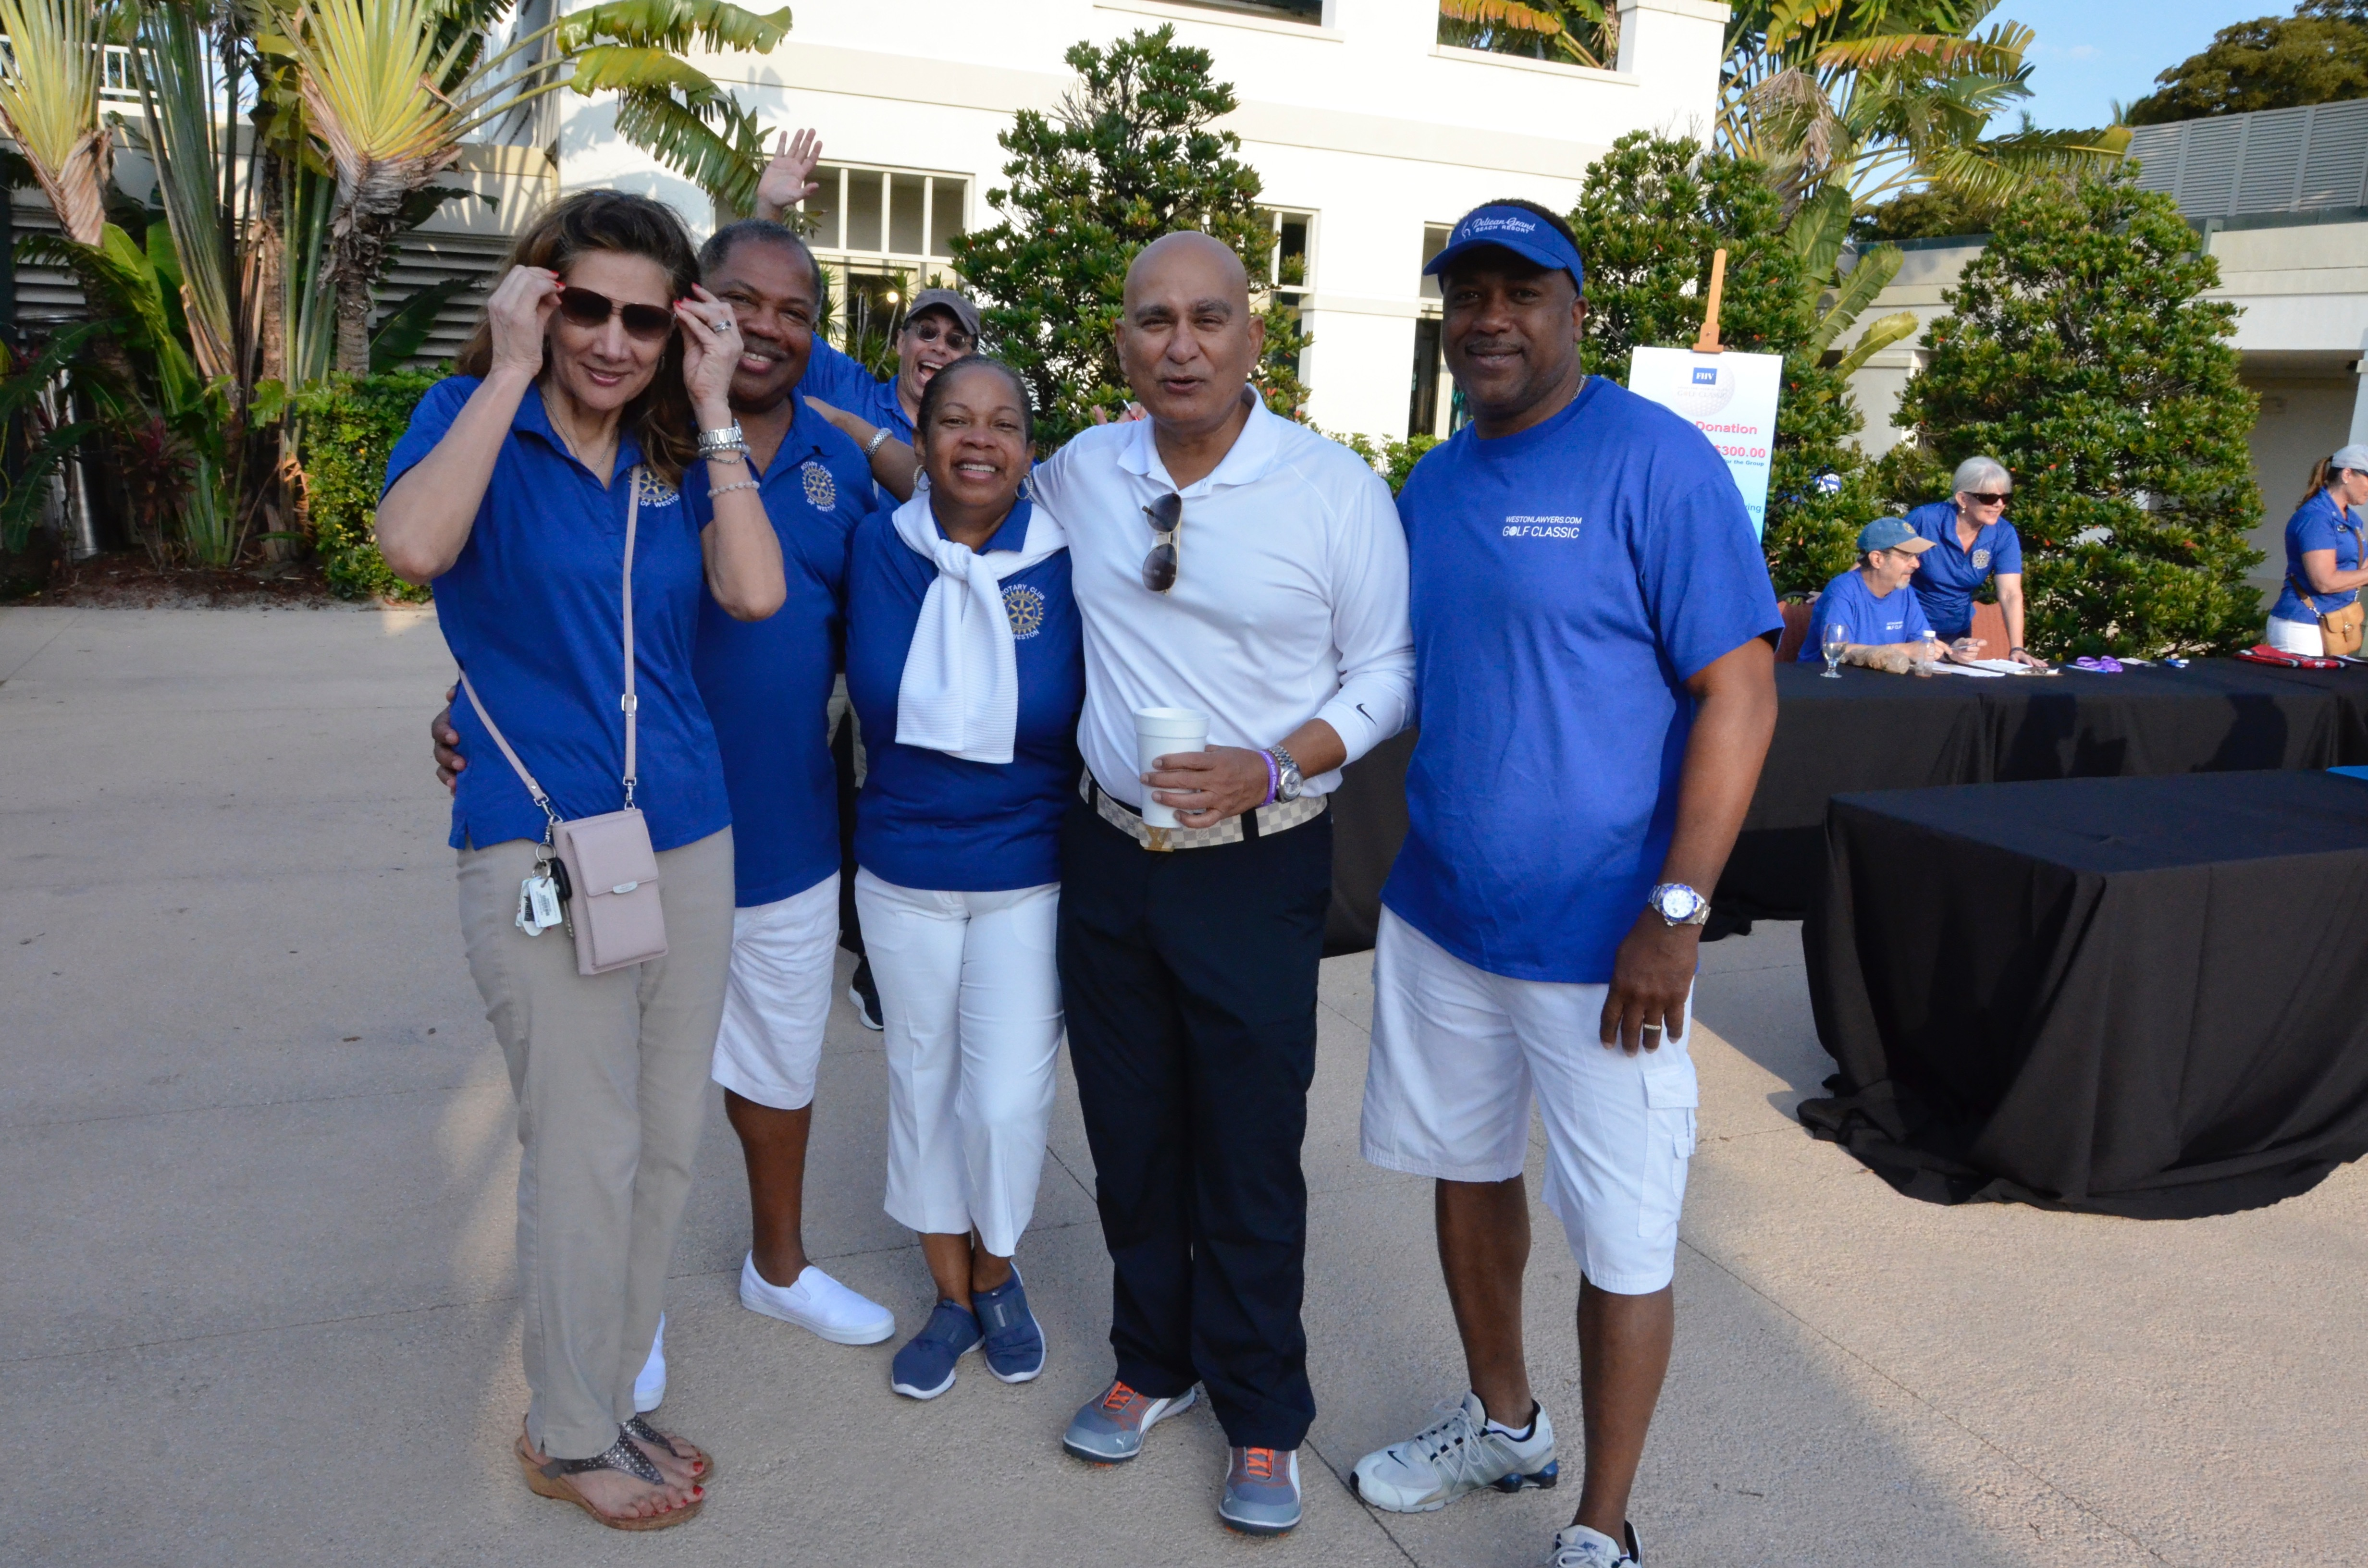 33rd Annual Rotary Golf Classic Sponsored by FHVLEGAL.COM gallery image #24